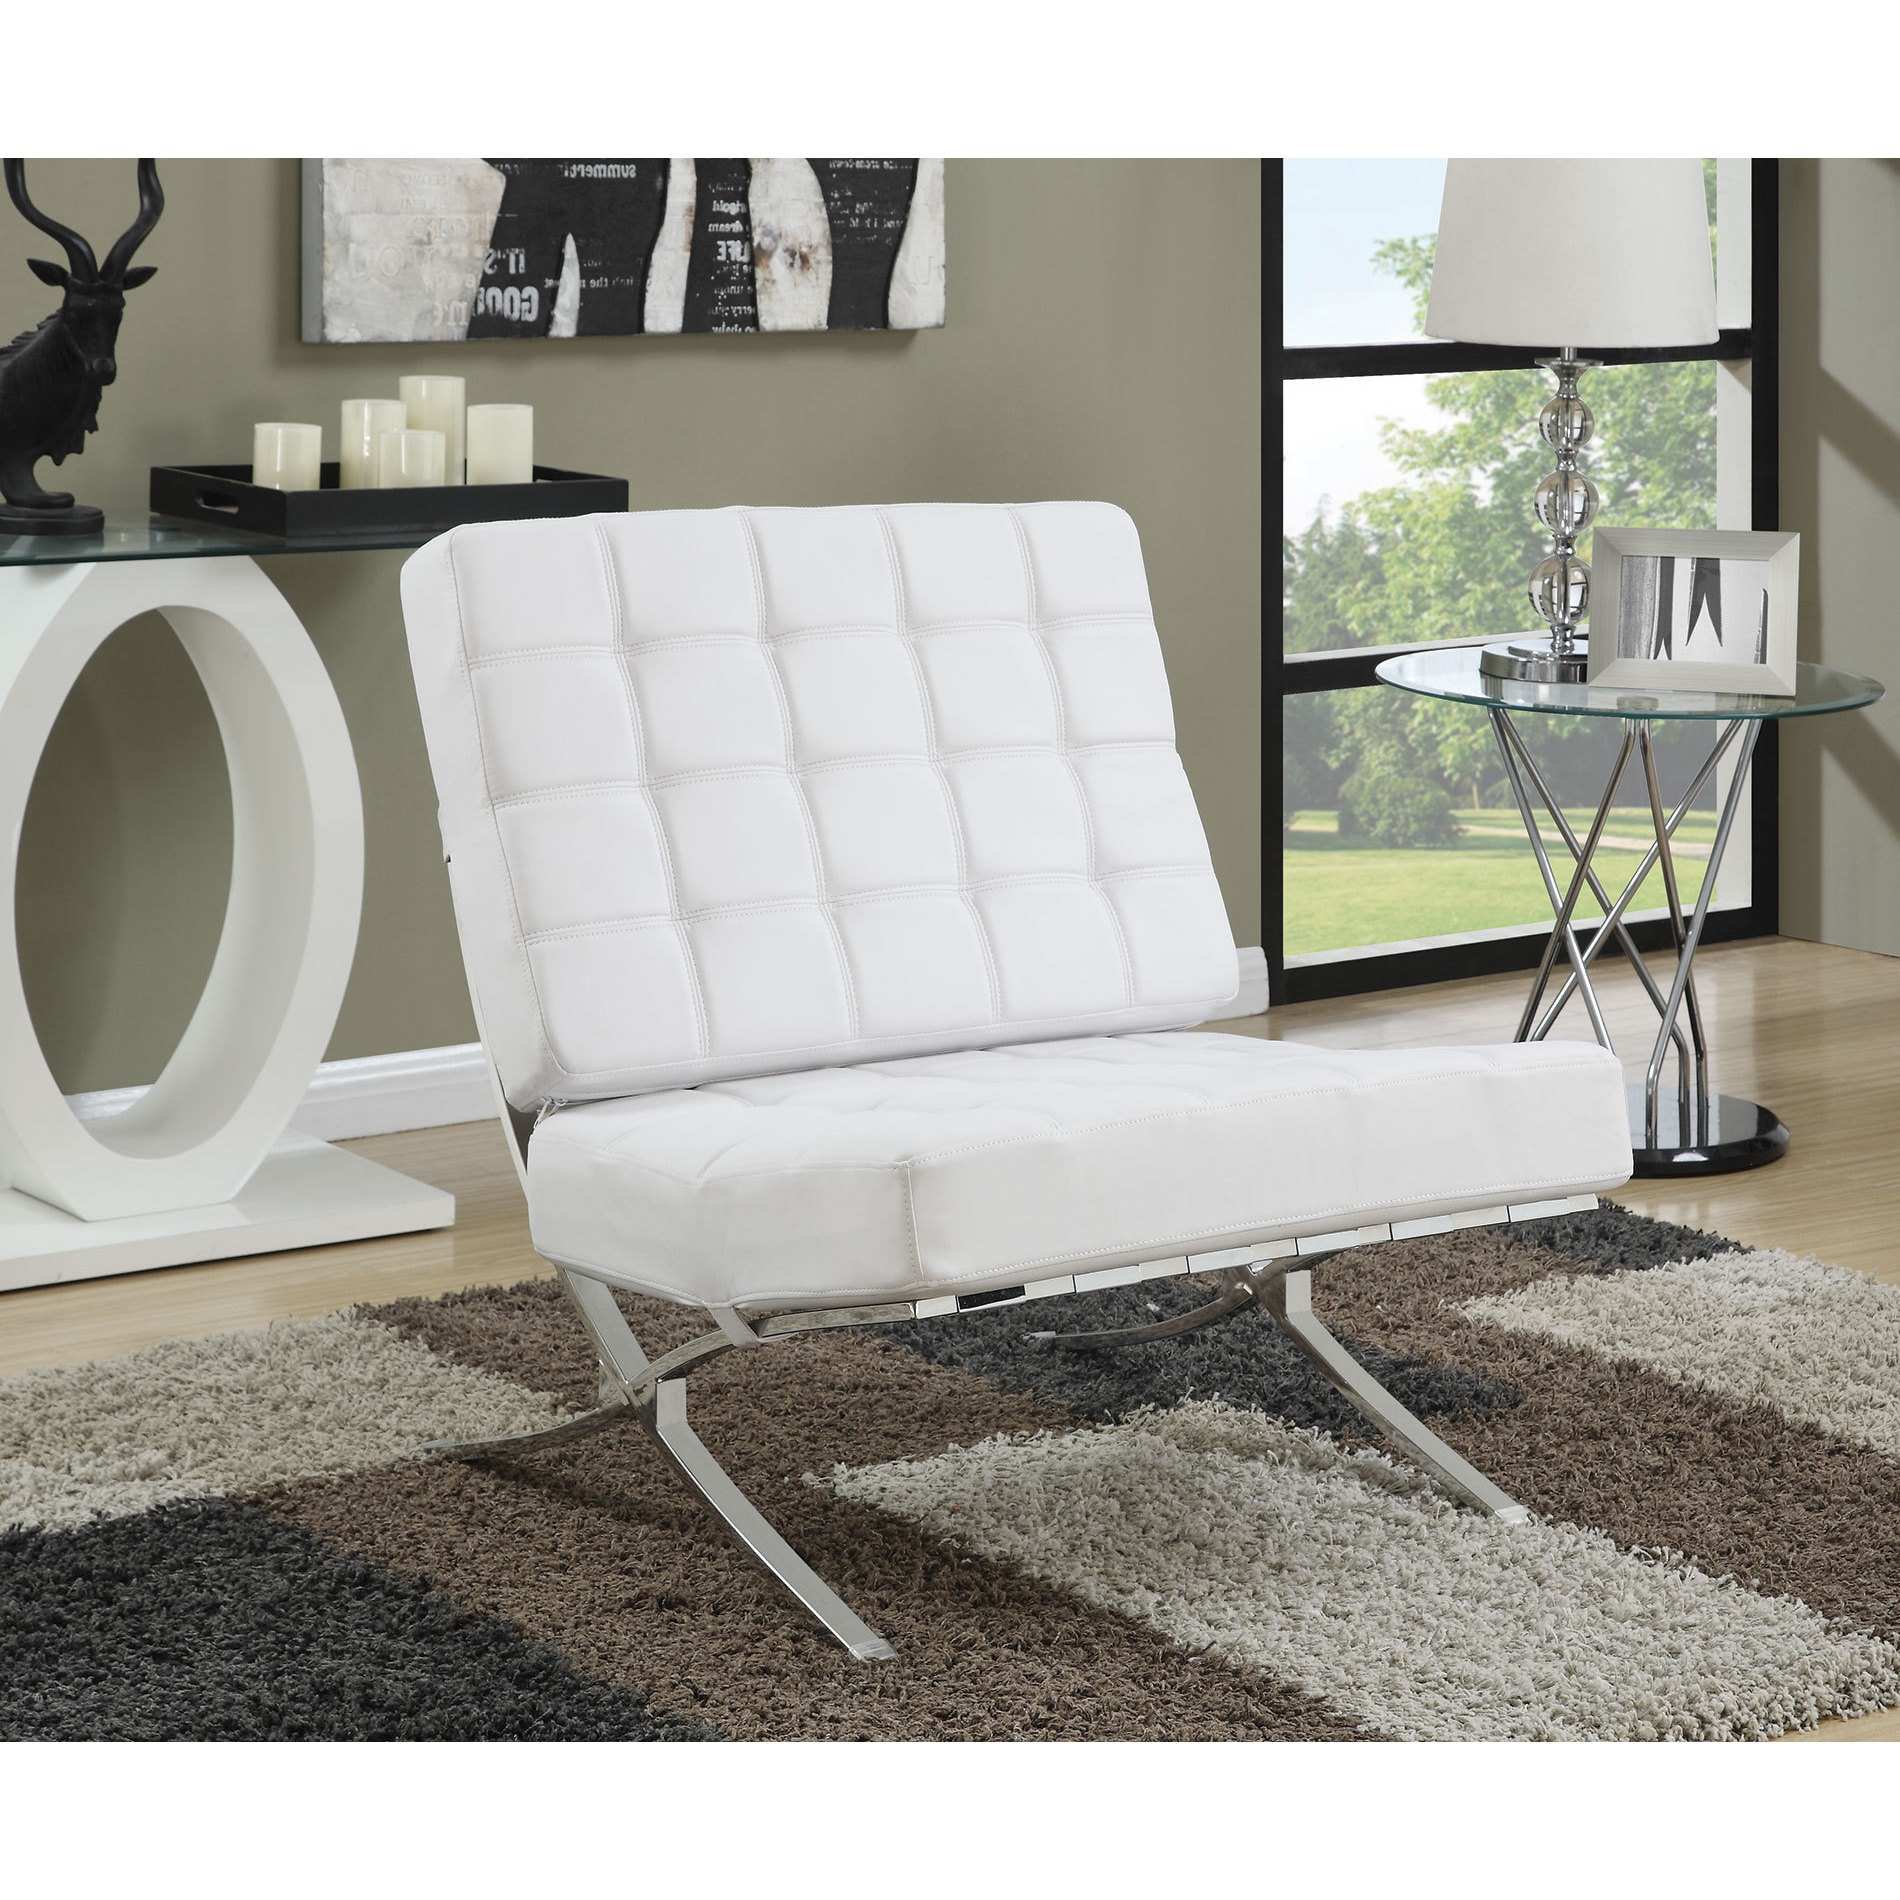 Coaster Company Leatherette X Chrome Base Accent Chair Ebay # Muebles Coaster